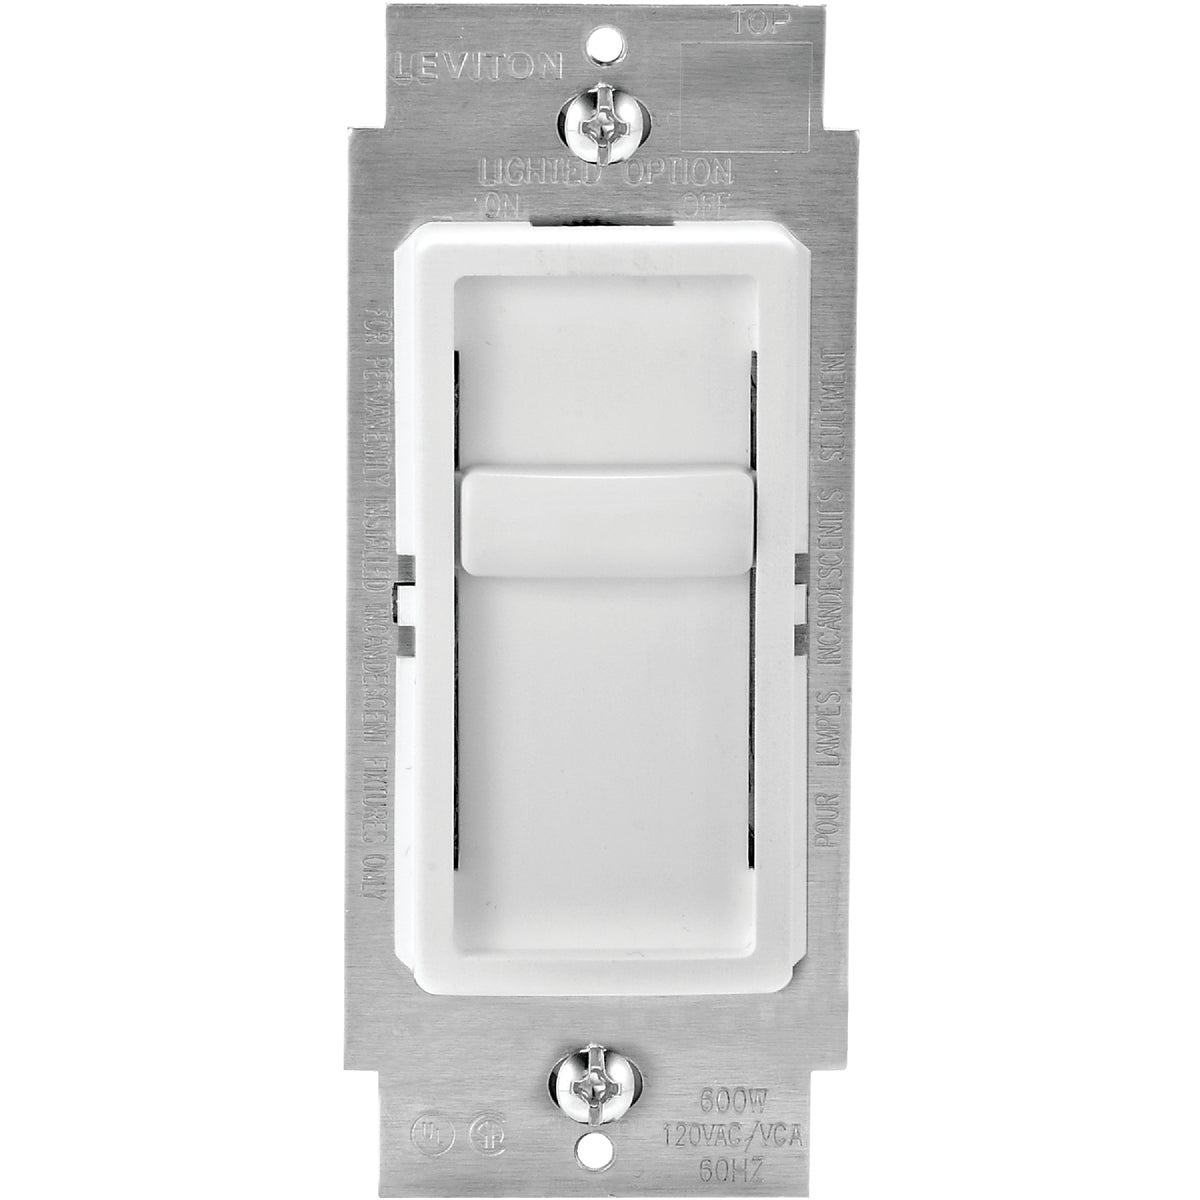 WH SP UNIVERSAL DIMMER - C22-06672-1LW by Leviton Mfg Co